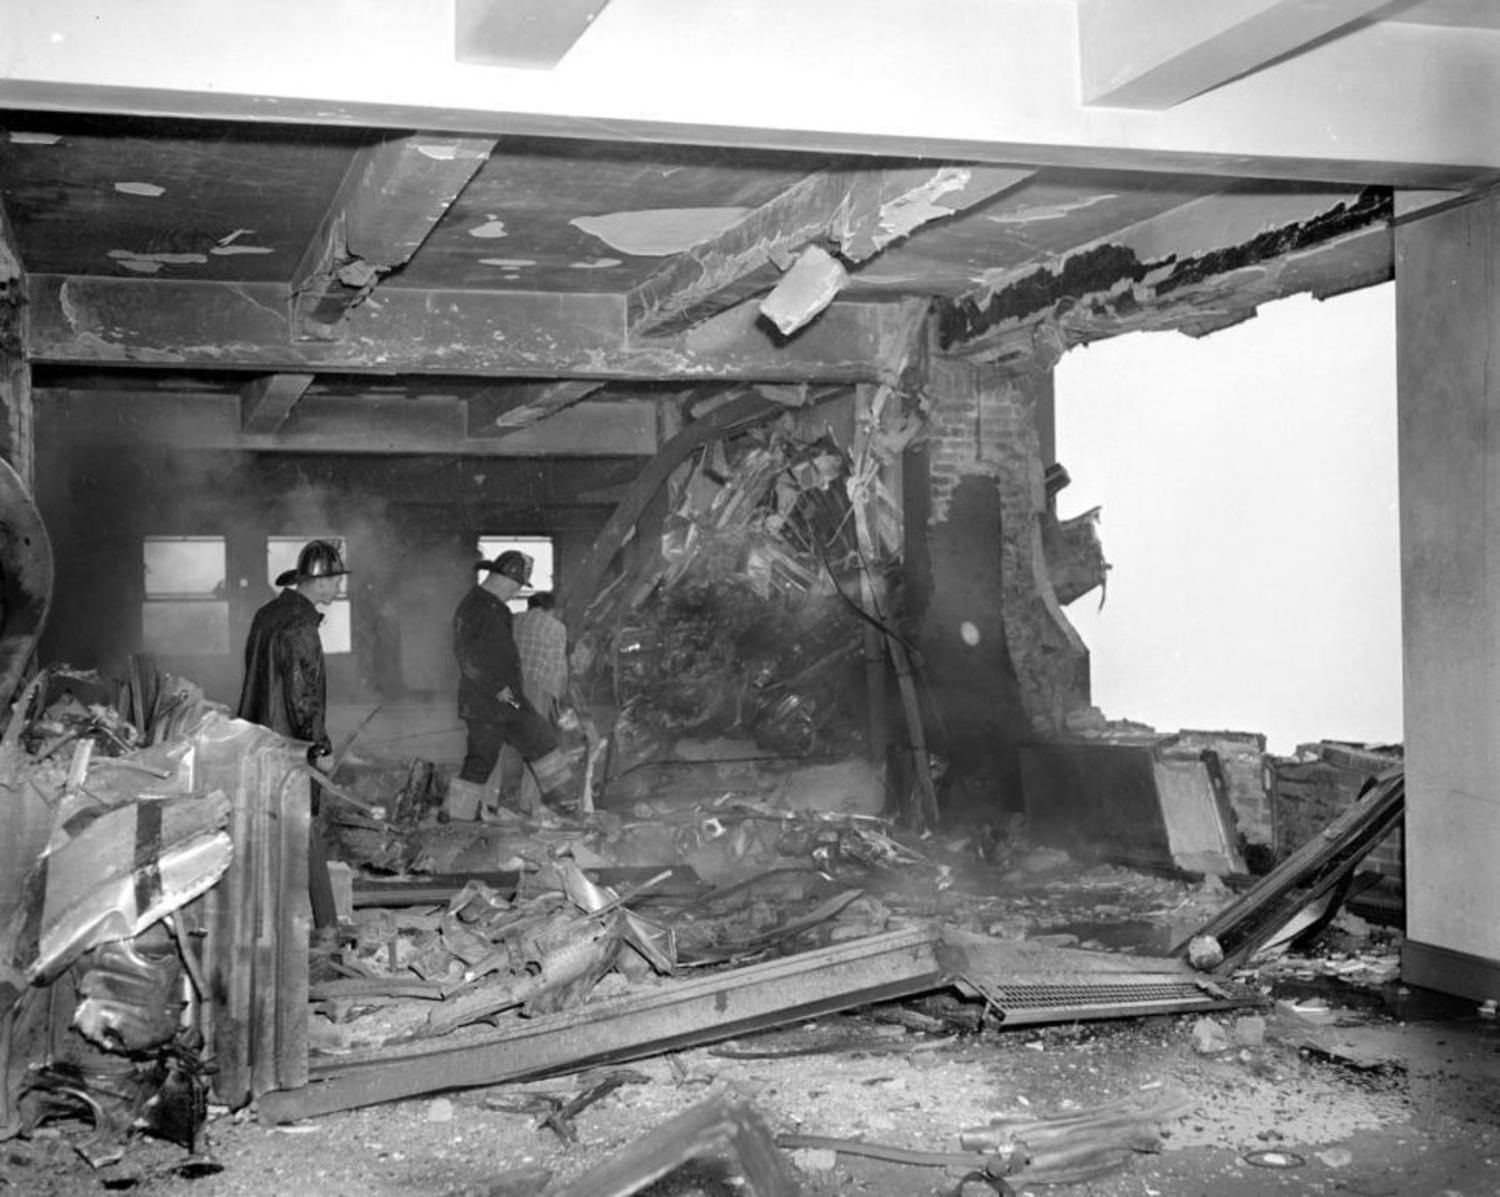 B-25 Mitchell bomber smashed beyond recognition into Empire State Building. This is a picture of the wreckage-strewn 79th floor where the bomber tore a 18-foot hole in wall. Propeller is embeded in the wall at the left.